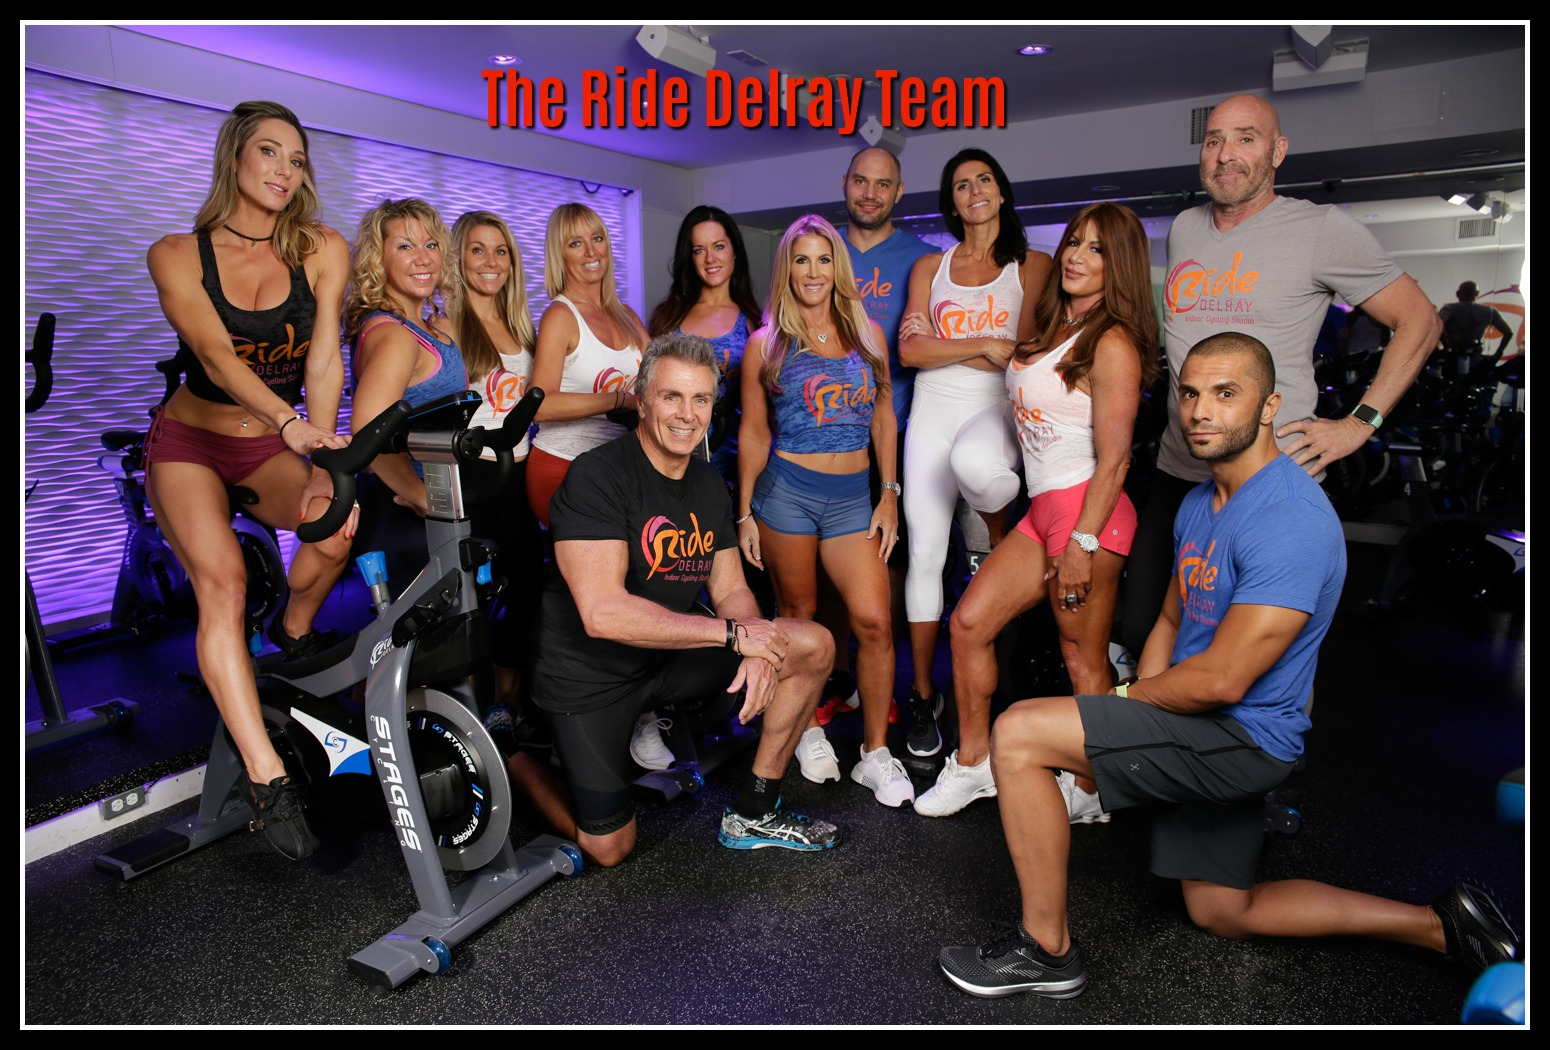 Ride Delray Team-2.jpg